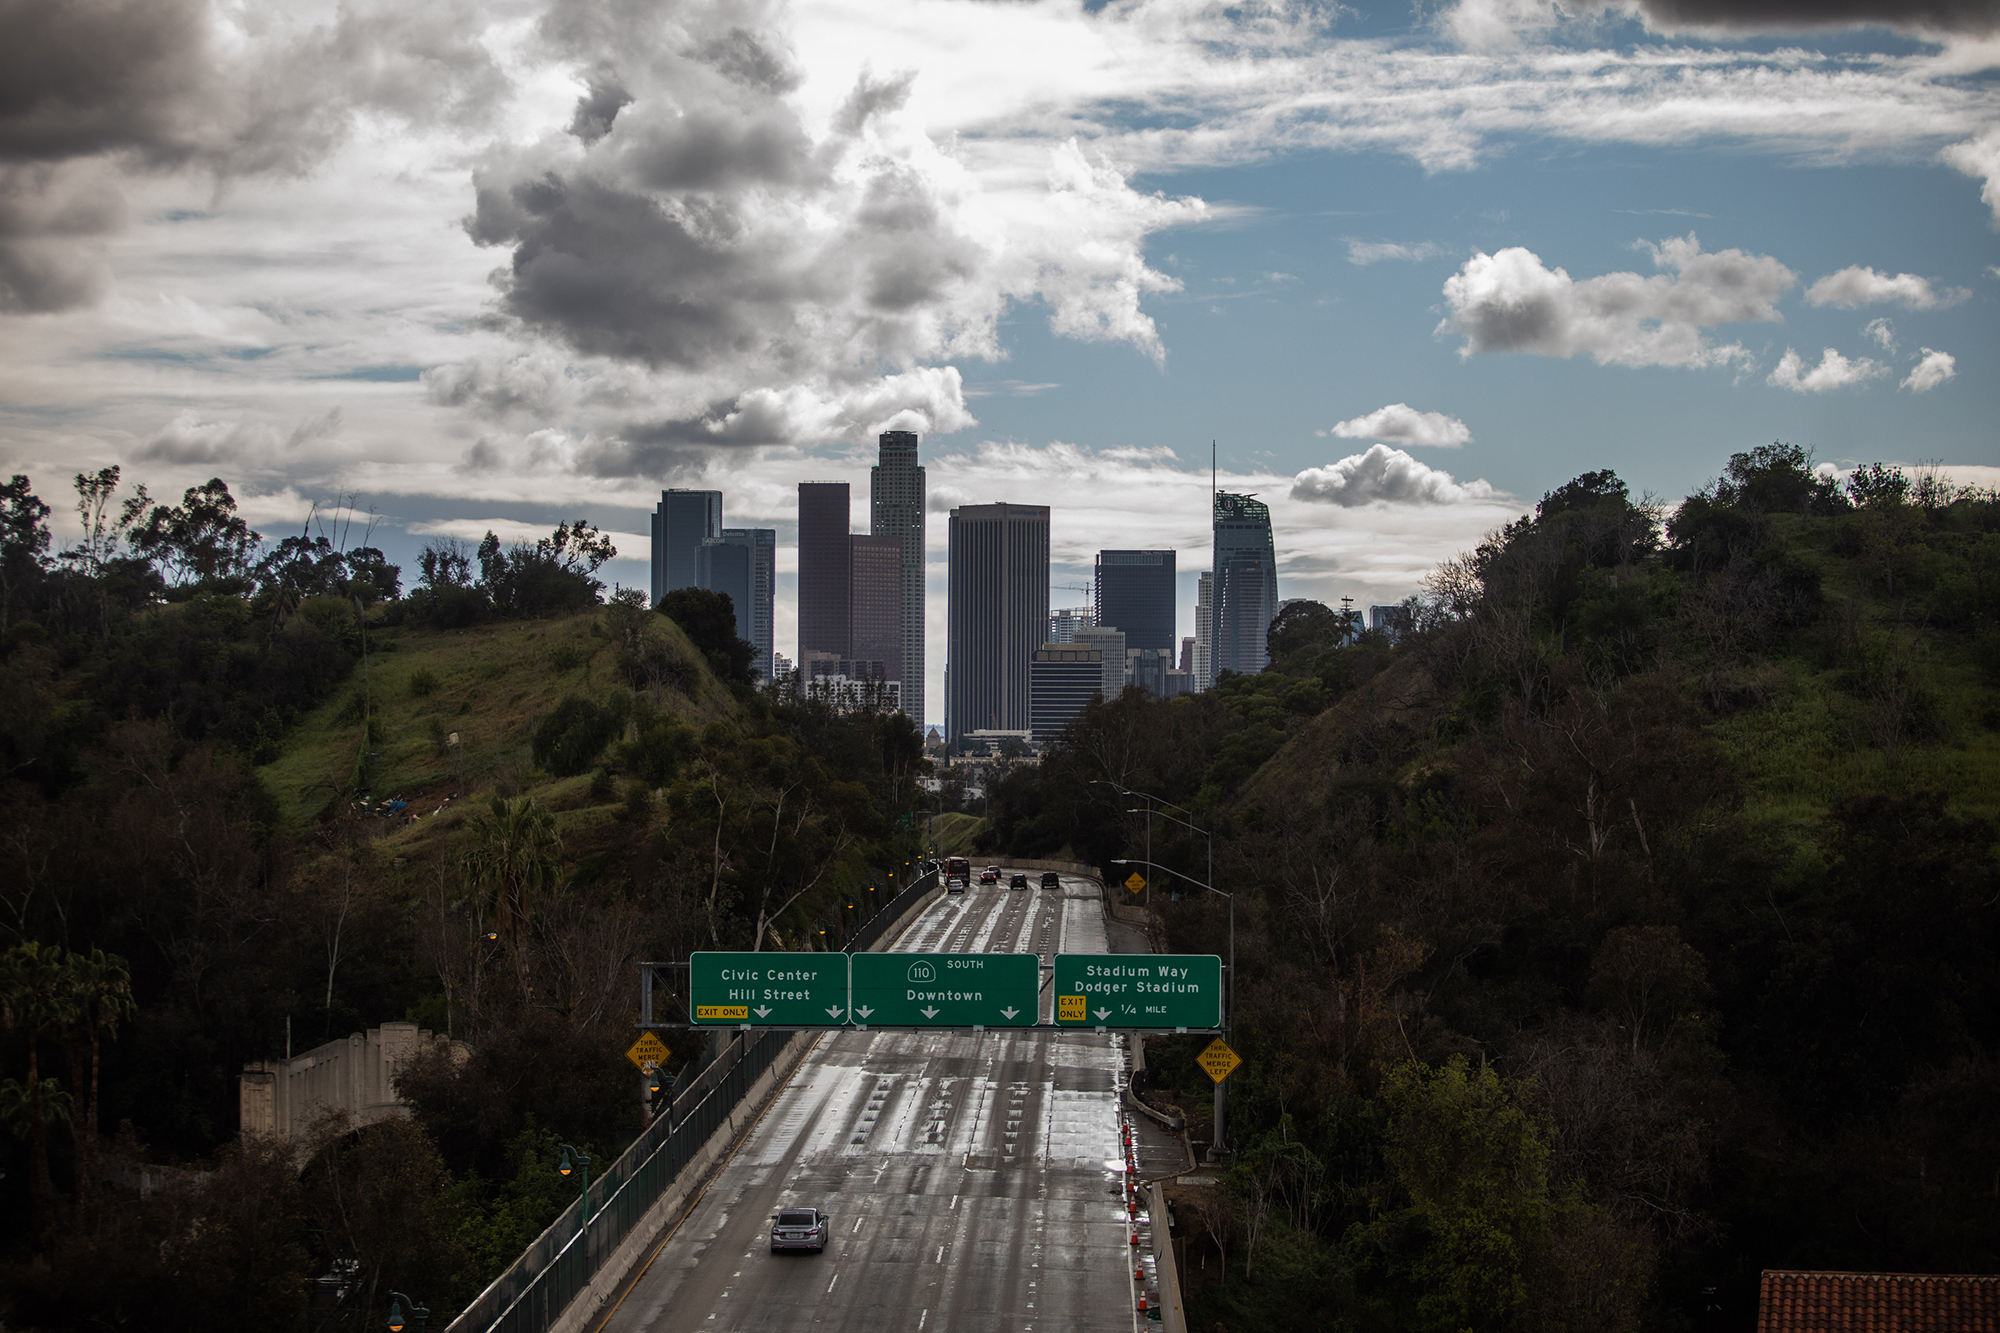 Freeway 110 is pictured with downtown Los Angeles, California in the background on March 19, 2020.